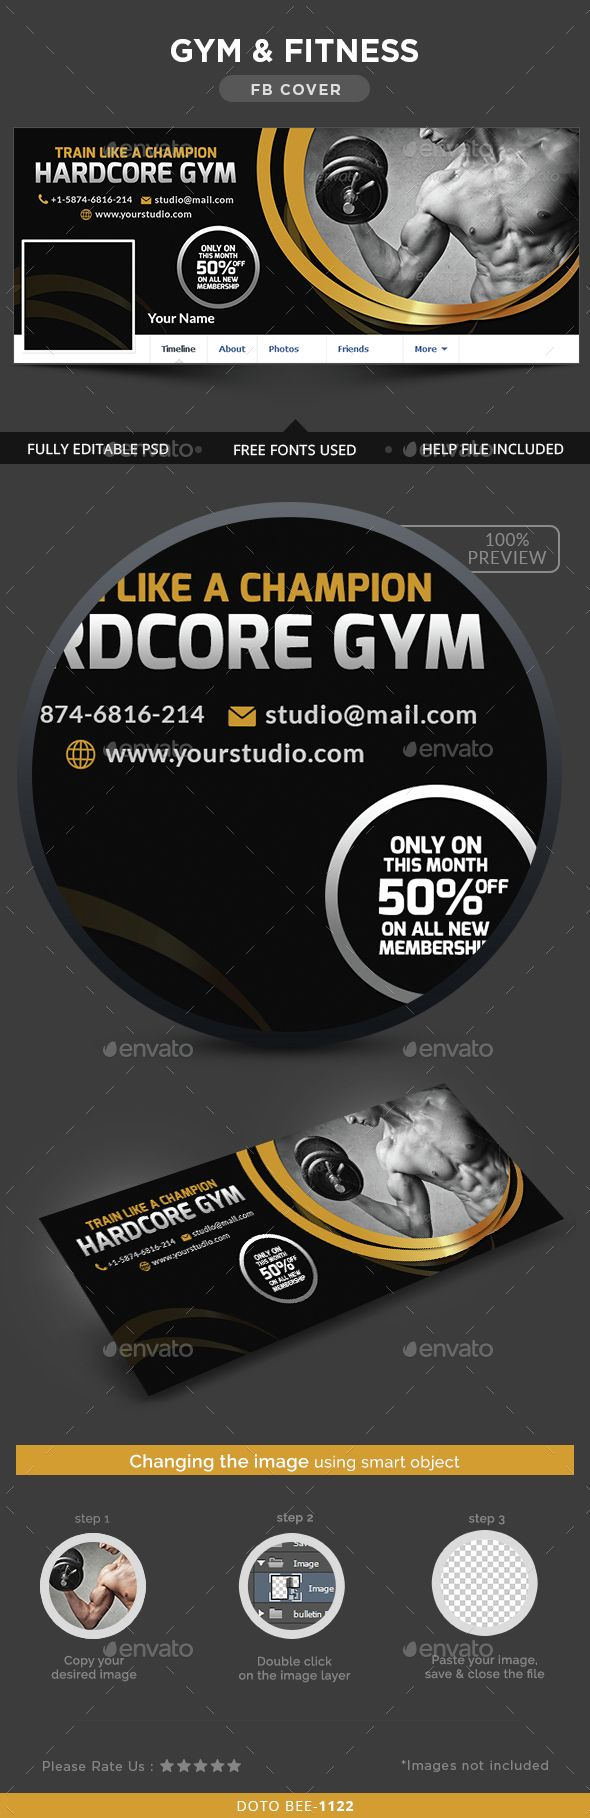 Gym & Fitness Facebook Cover Template PSD. Download here: http://graphicriver.net/item/gym-fitness-facebook-cover/14704082?ref=ksioks